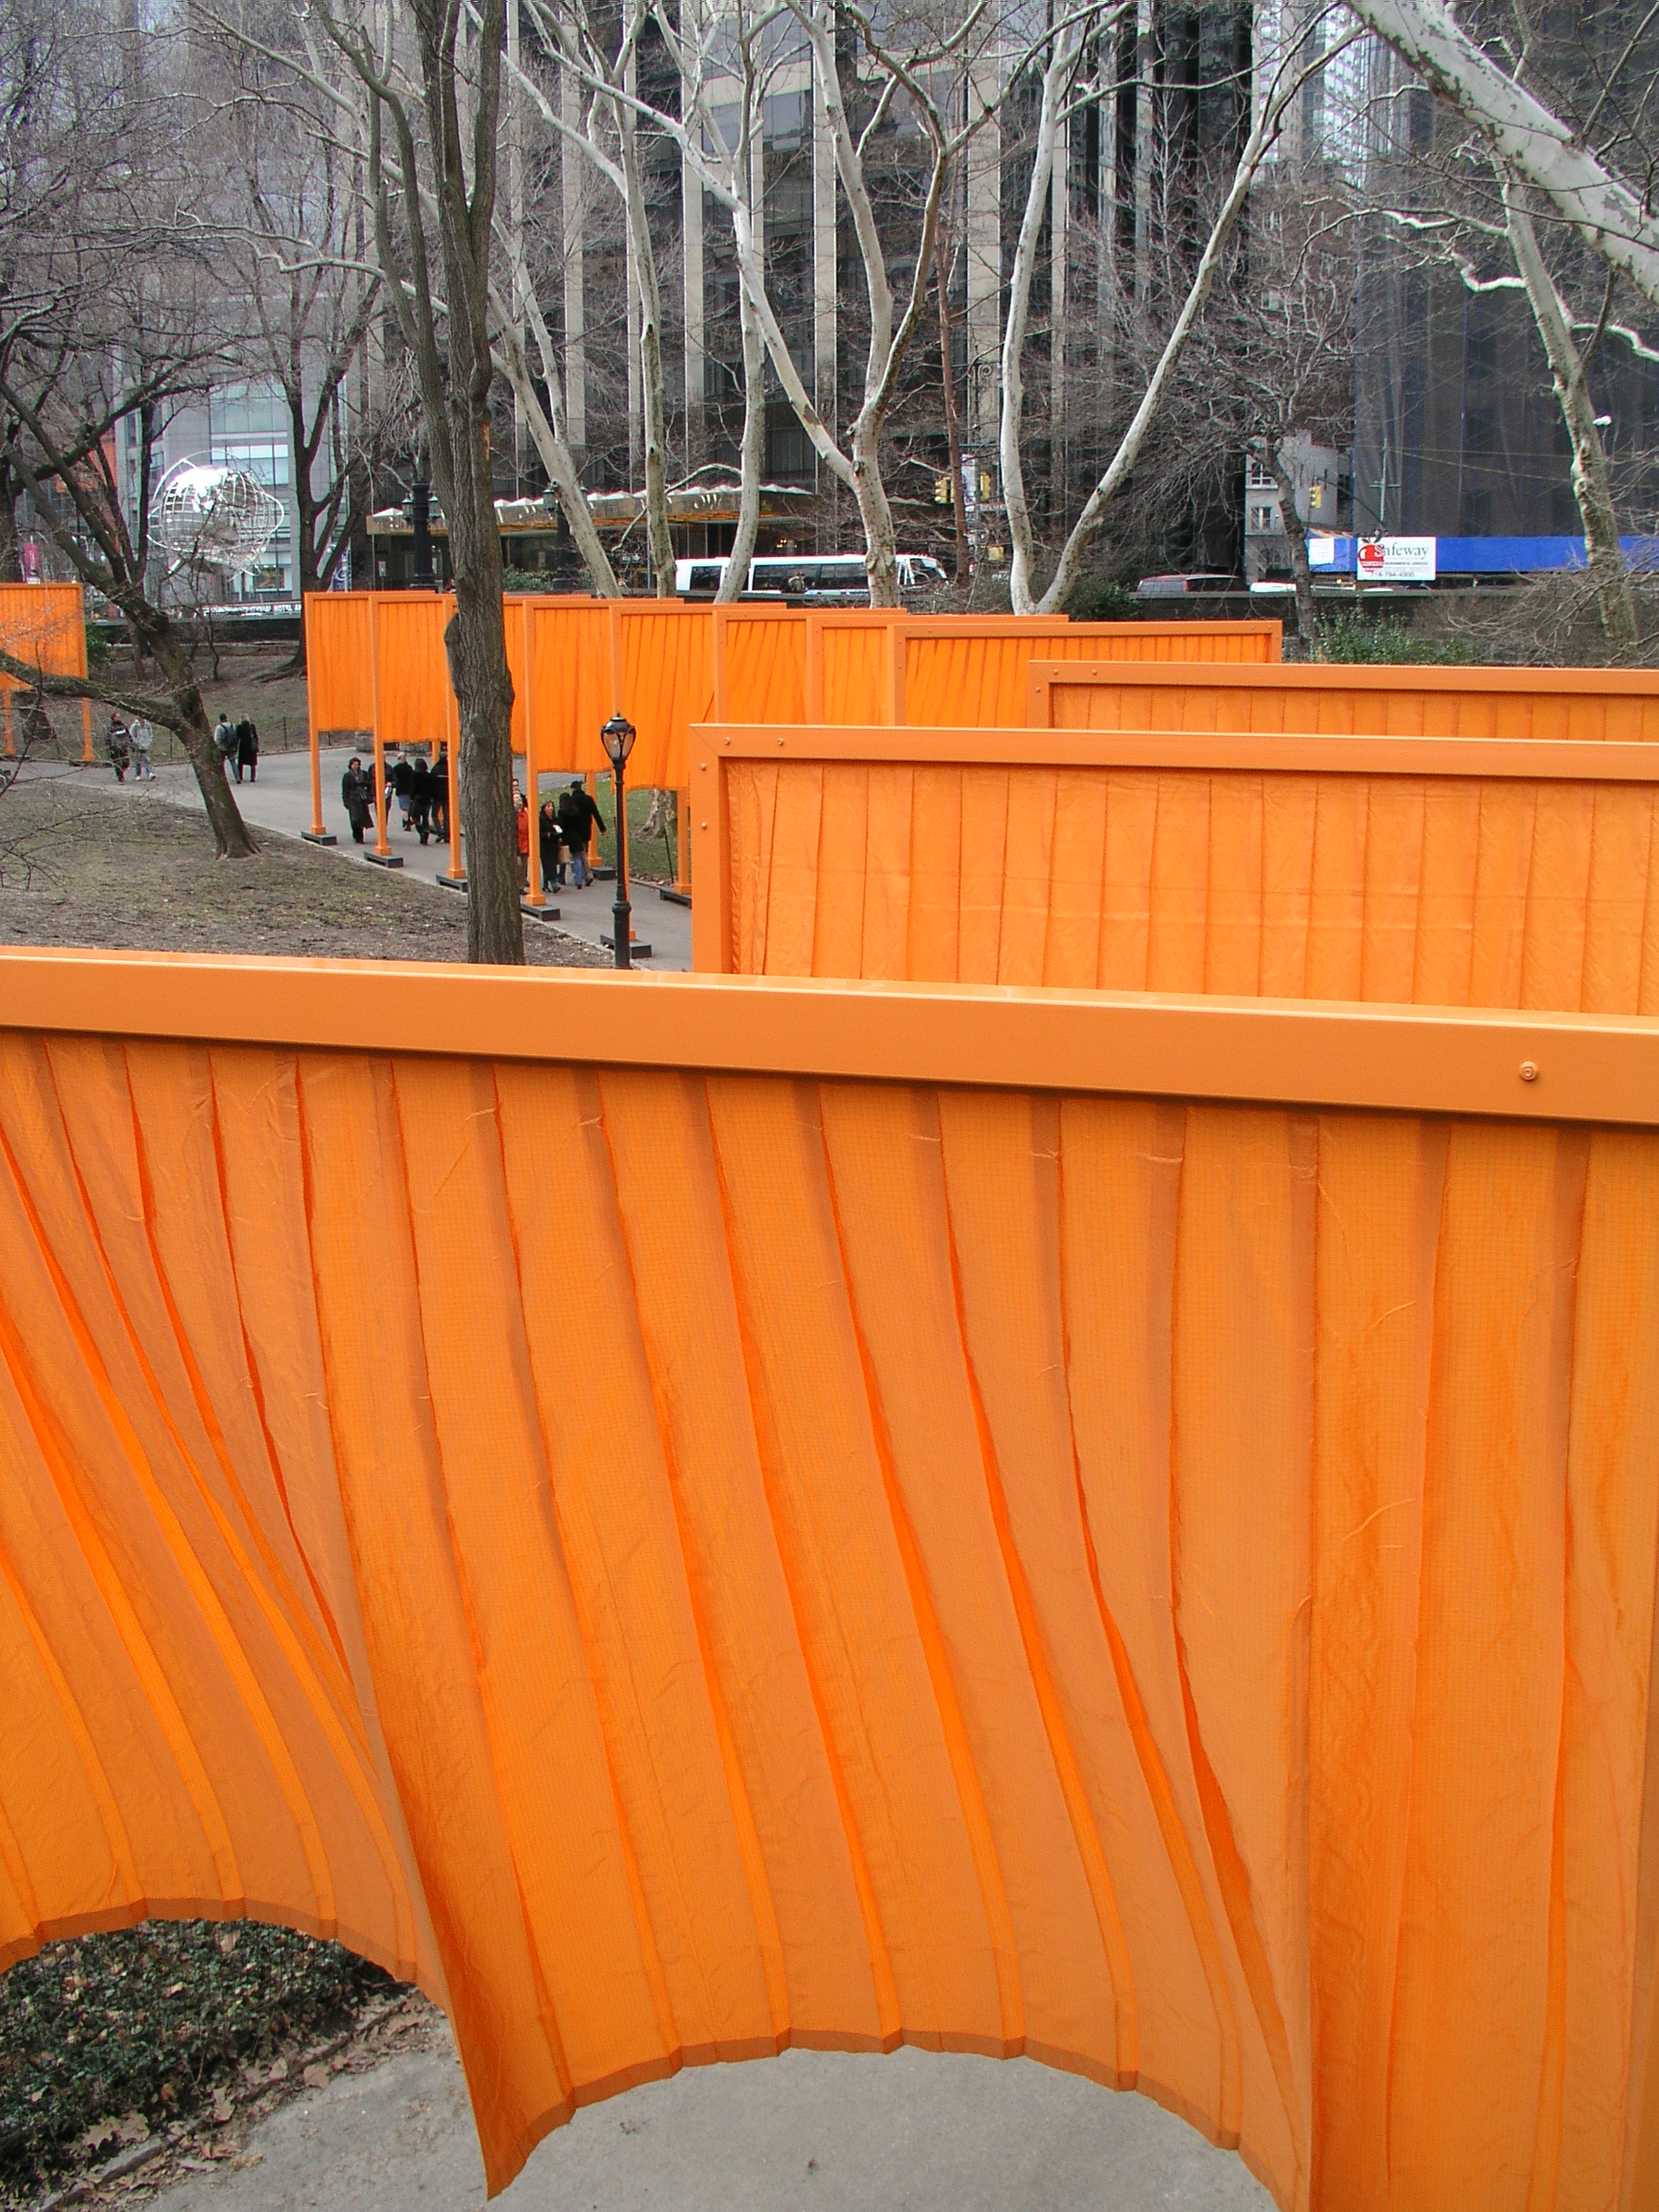 The Christo Gates 2005 in Central Park.2.JPG